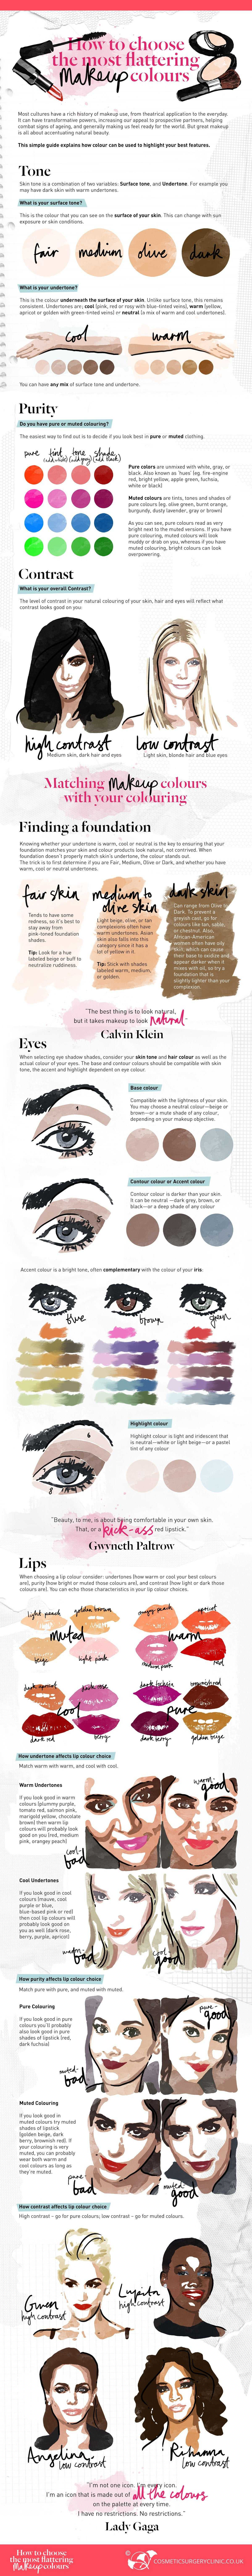 How To Choose The Most Flattering Make-Up Colours